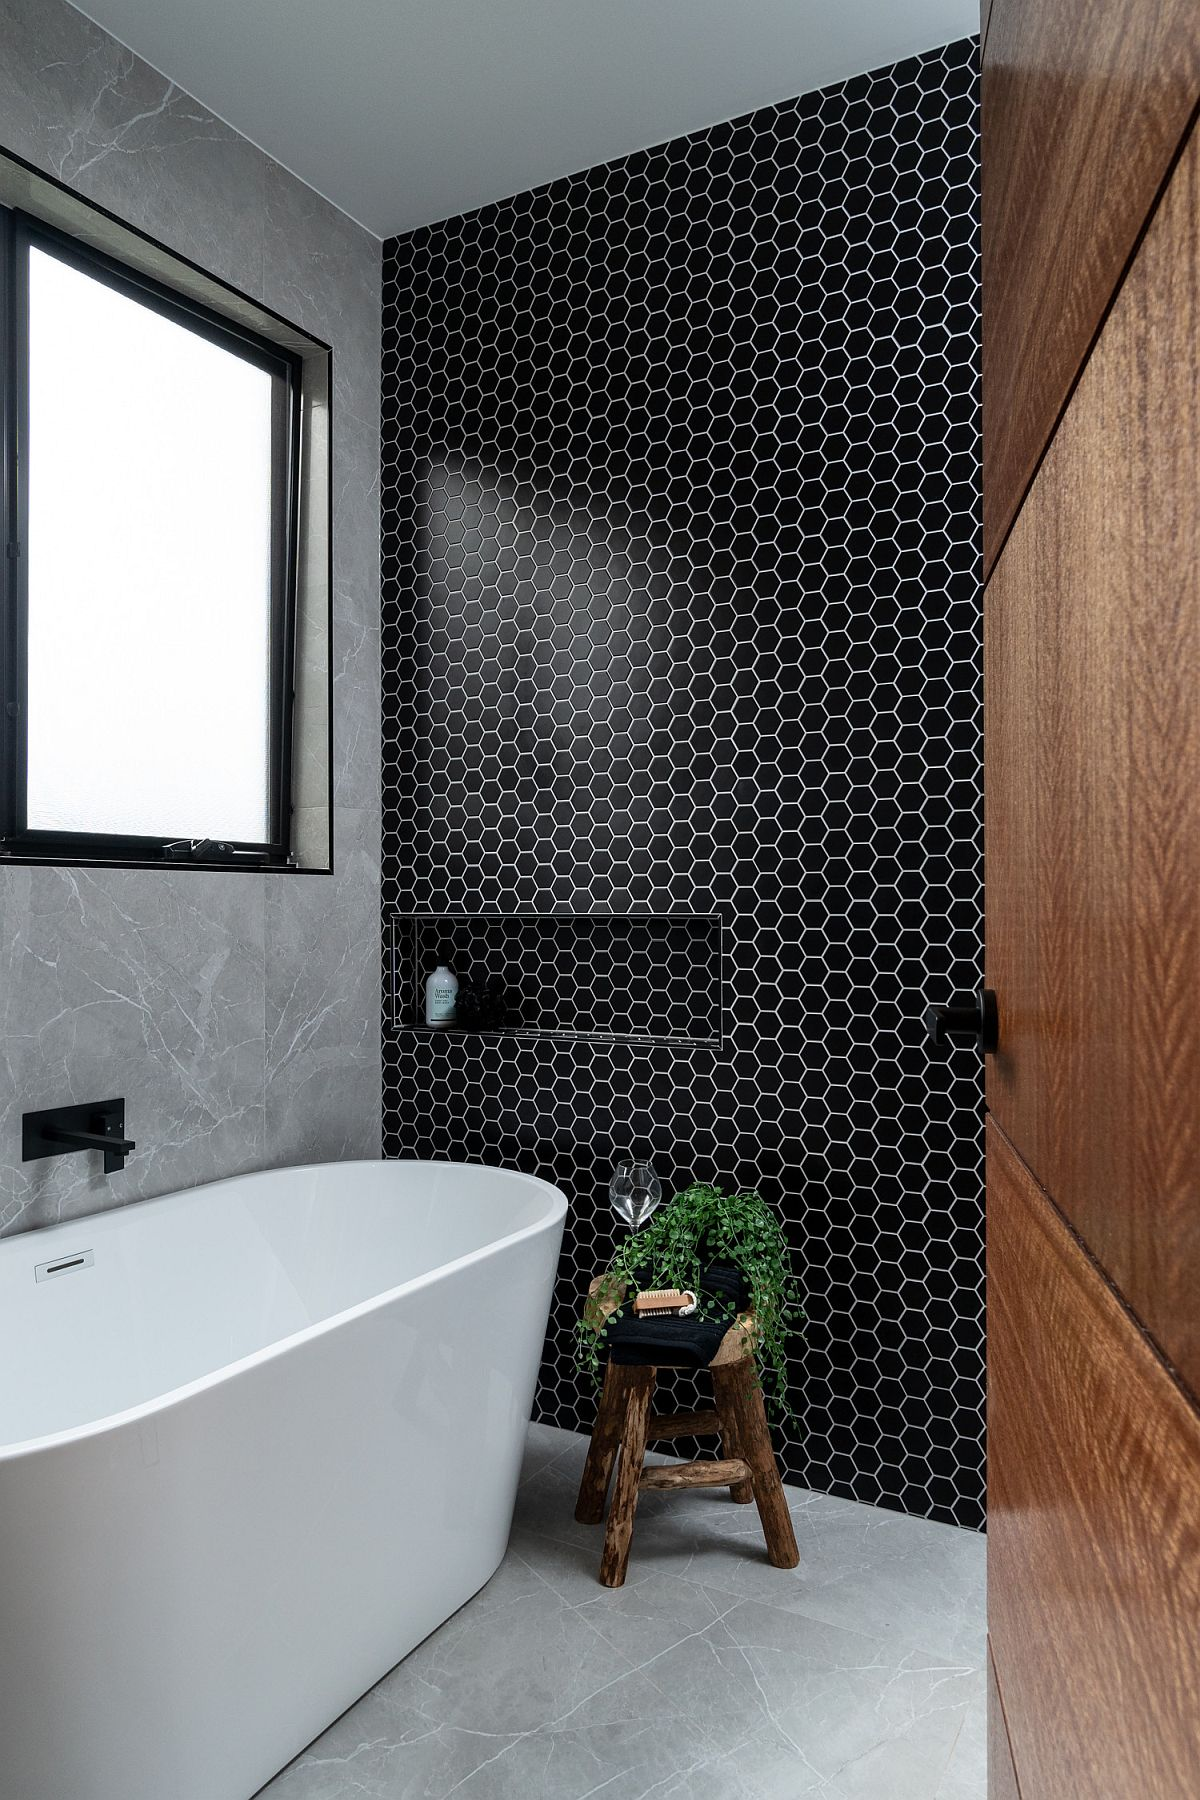 Small-hexagonal-tiles-in-black-steal-the-show-in-this-modern-bathroom-in-neutral-hues-90408